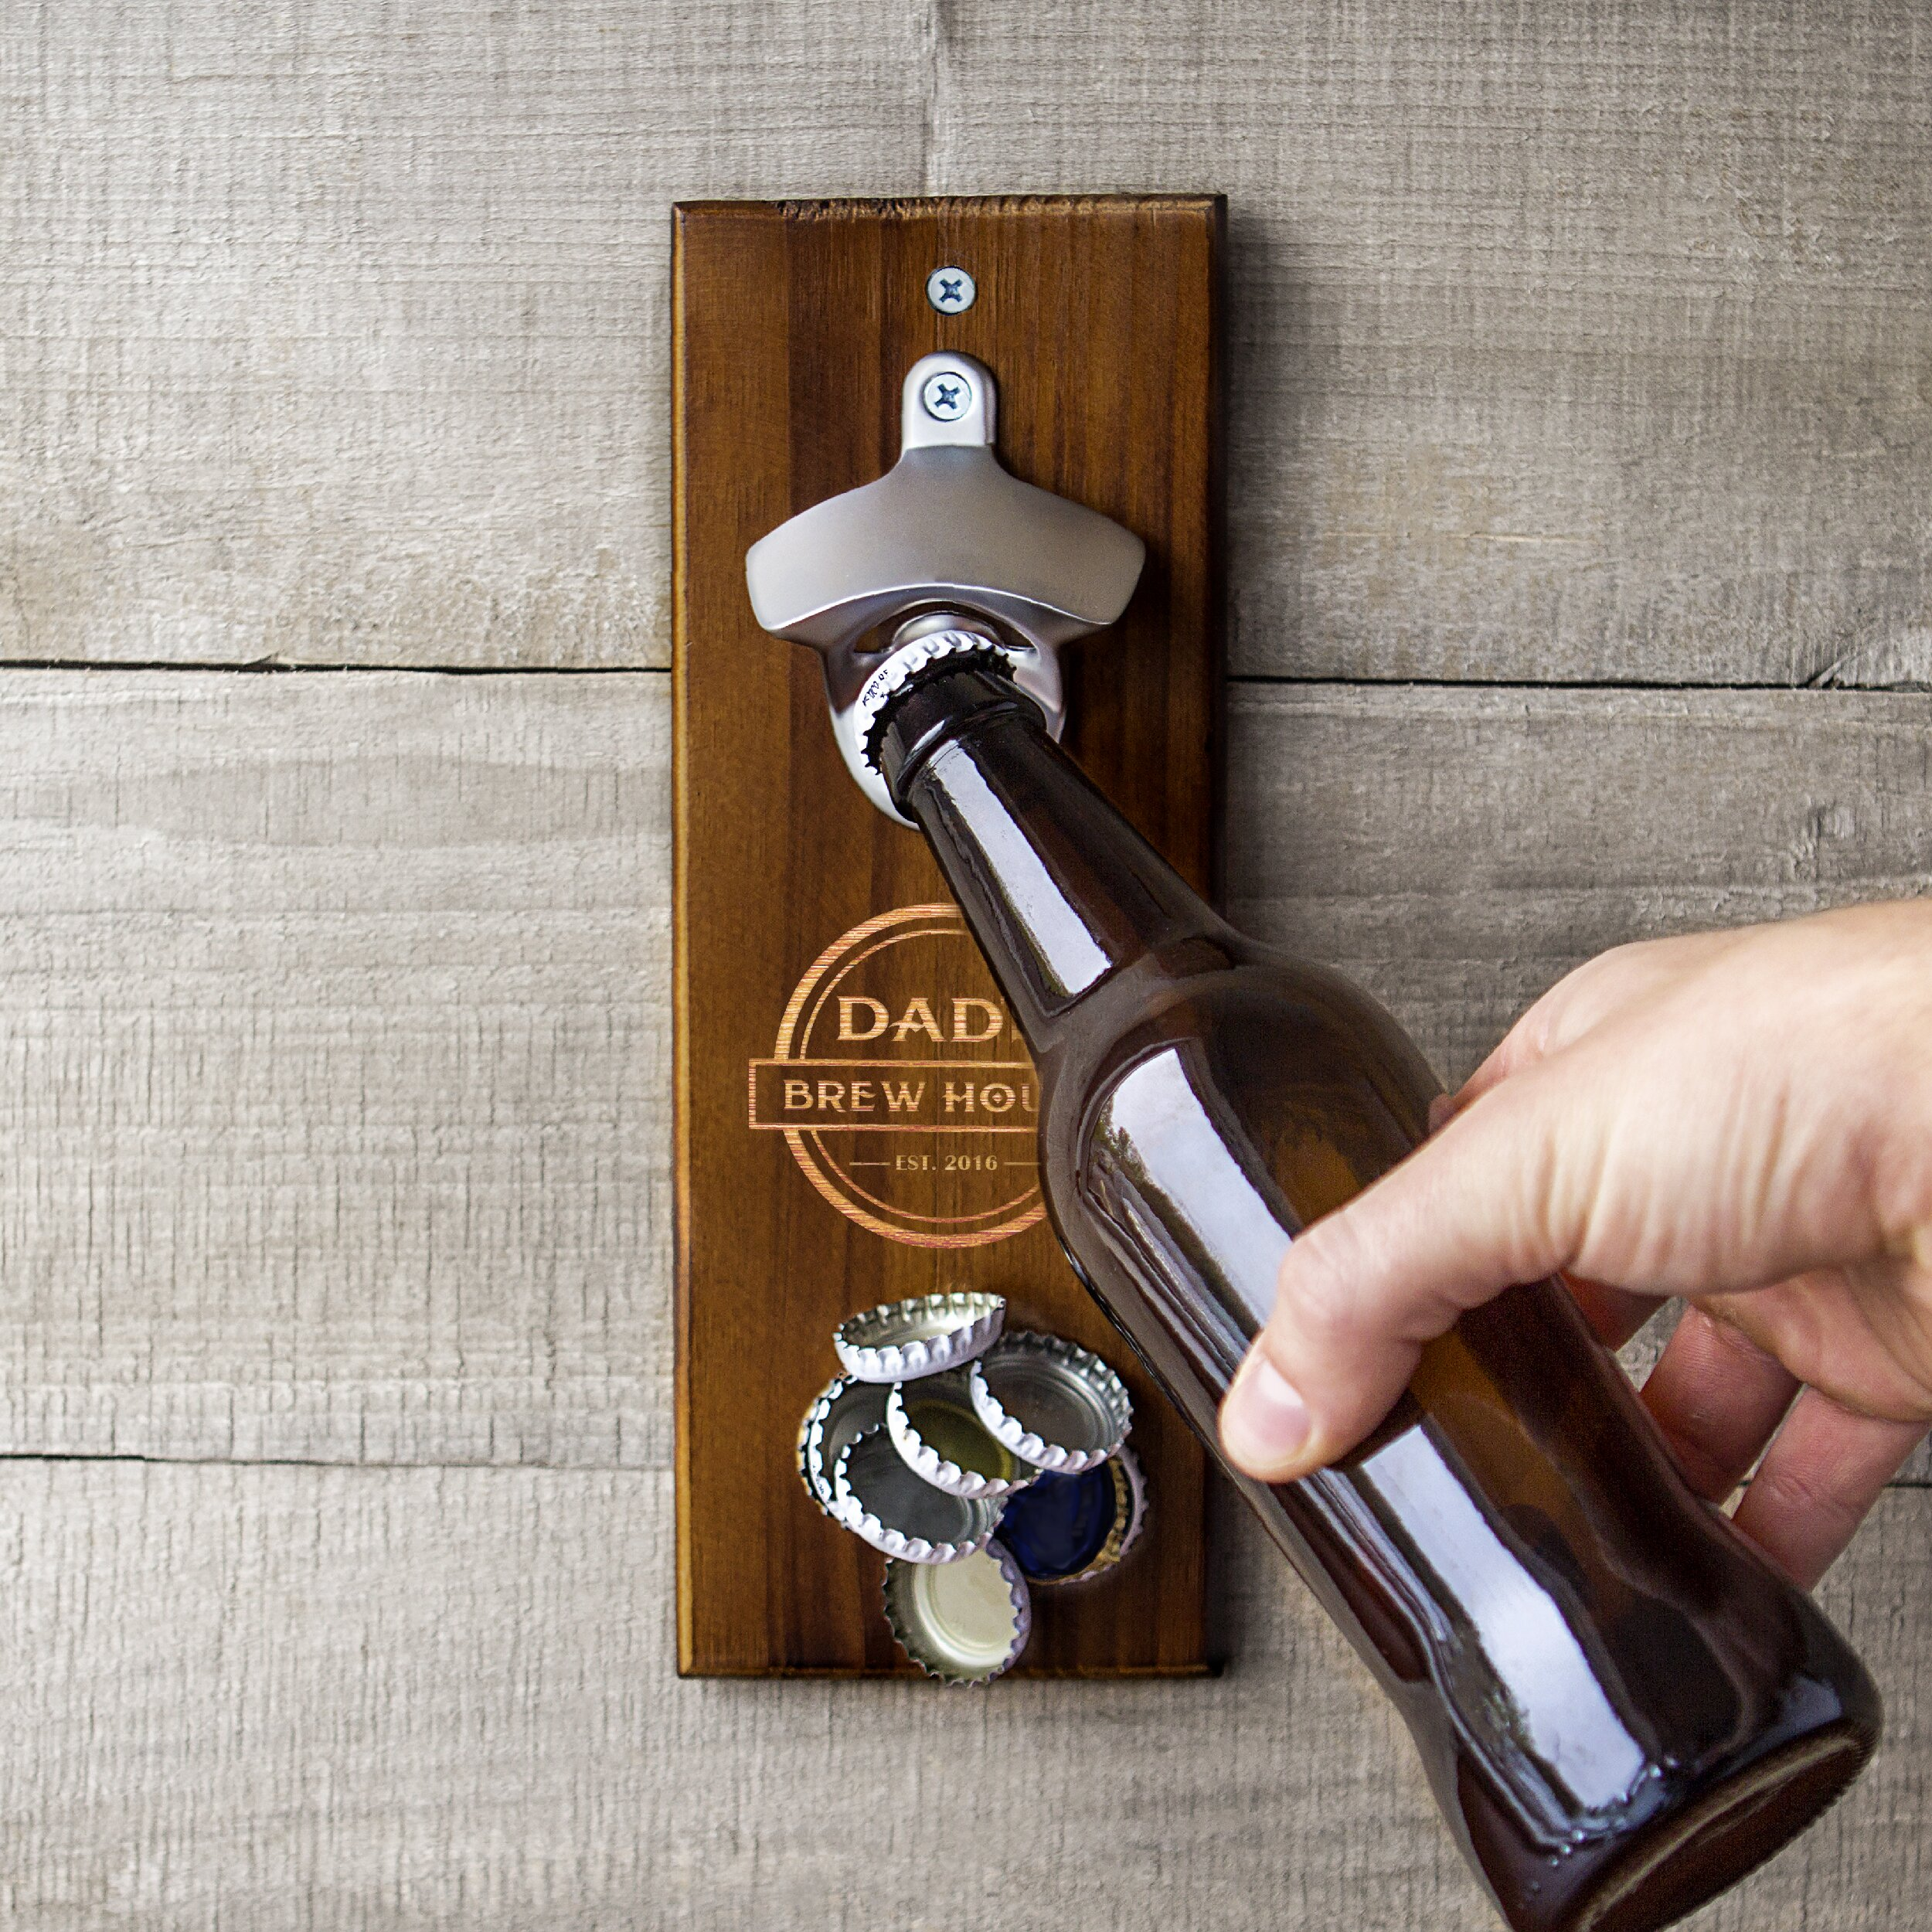 Cathys concepts personalized dad 39 s brew house wall mount bottle opener reviews - Personalized wall mount bottle opener ...